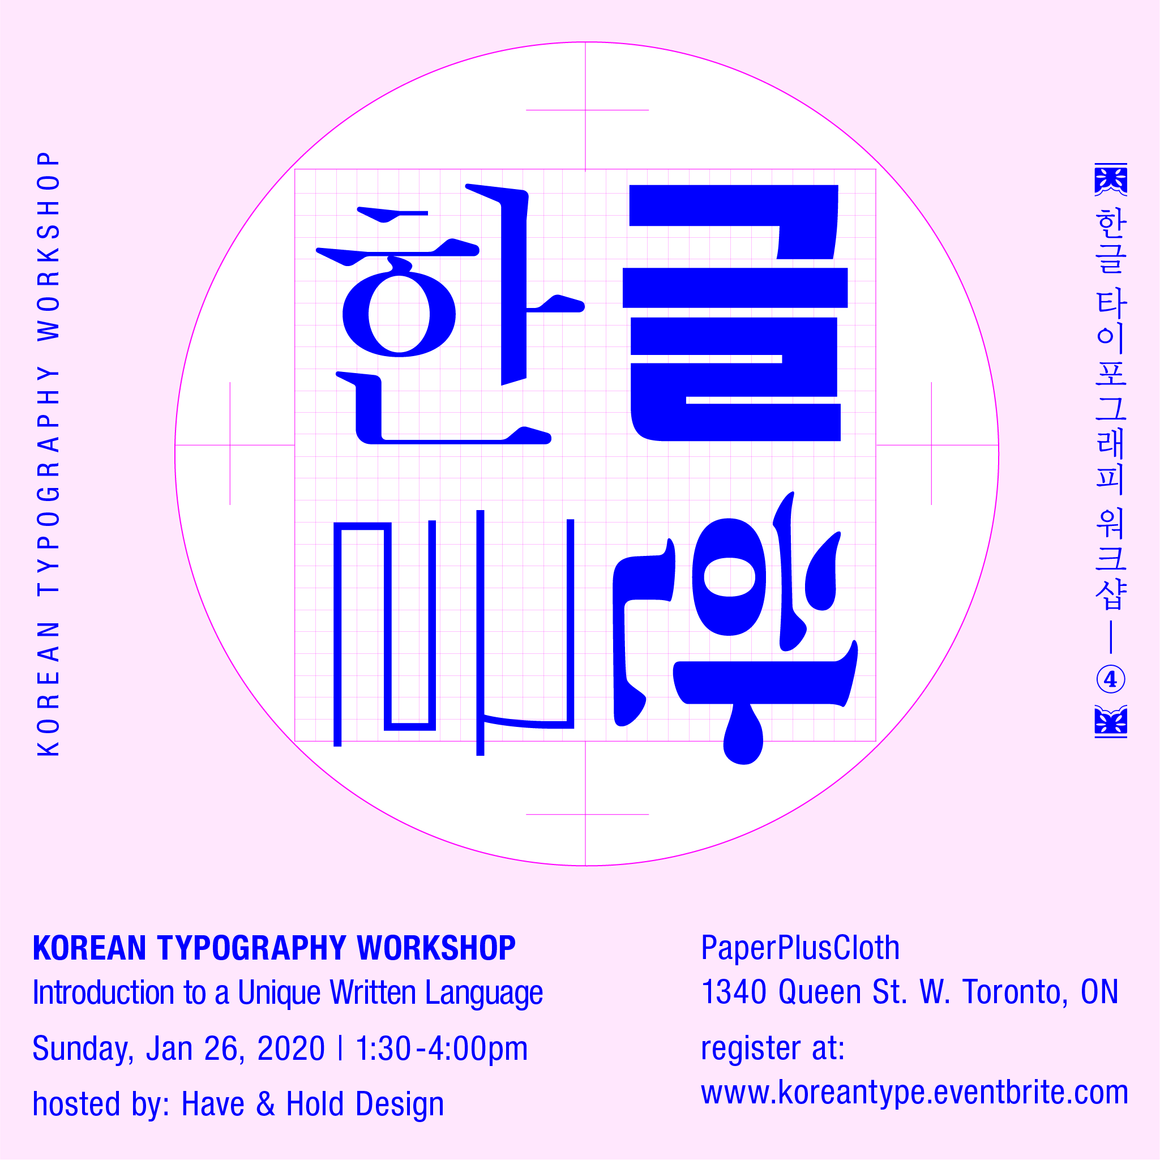 Korean Typography Workshop Hosted by Have & Hold Design + Fritz K. Park